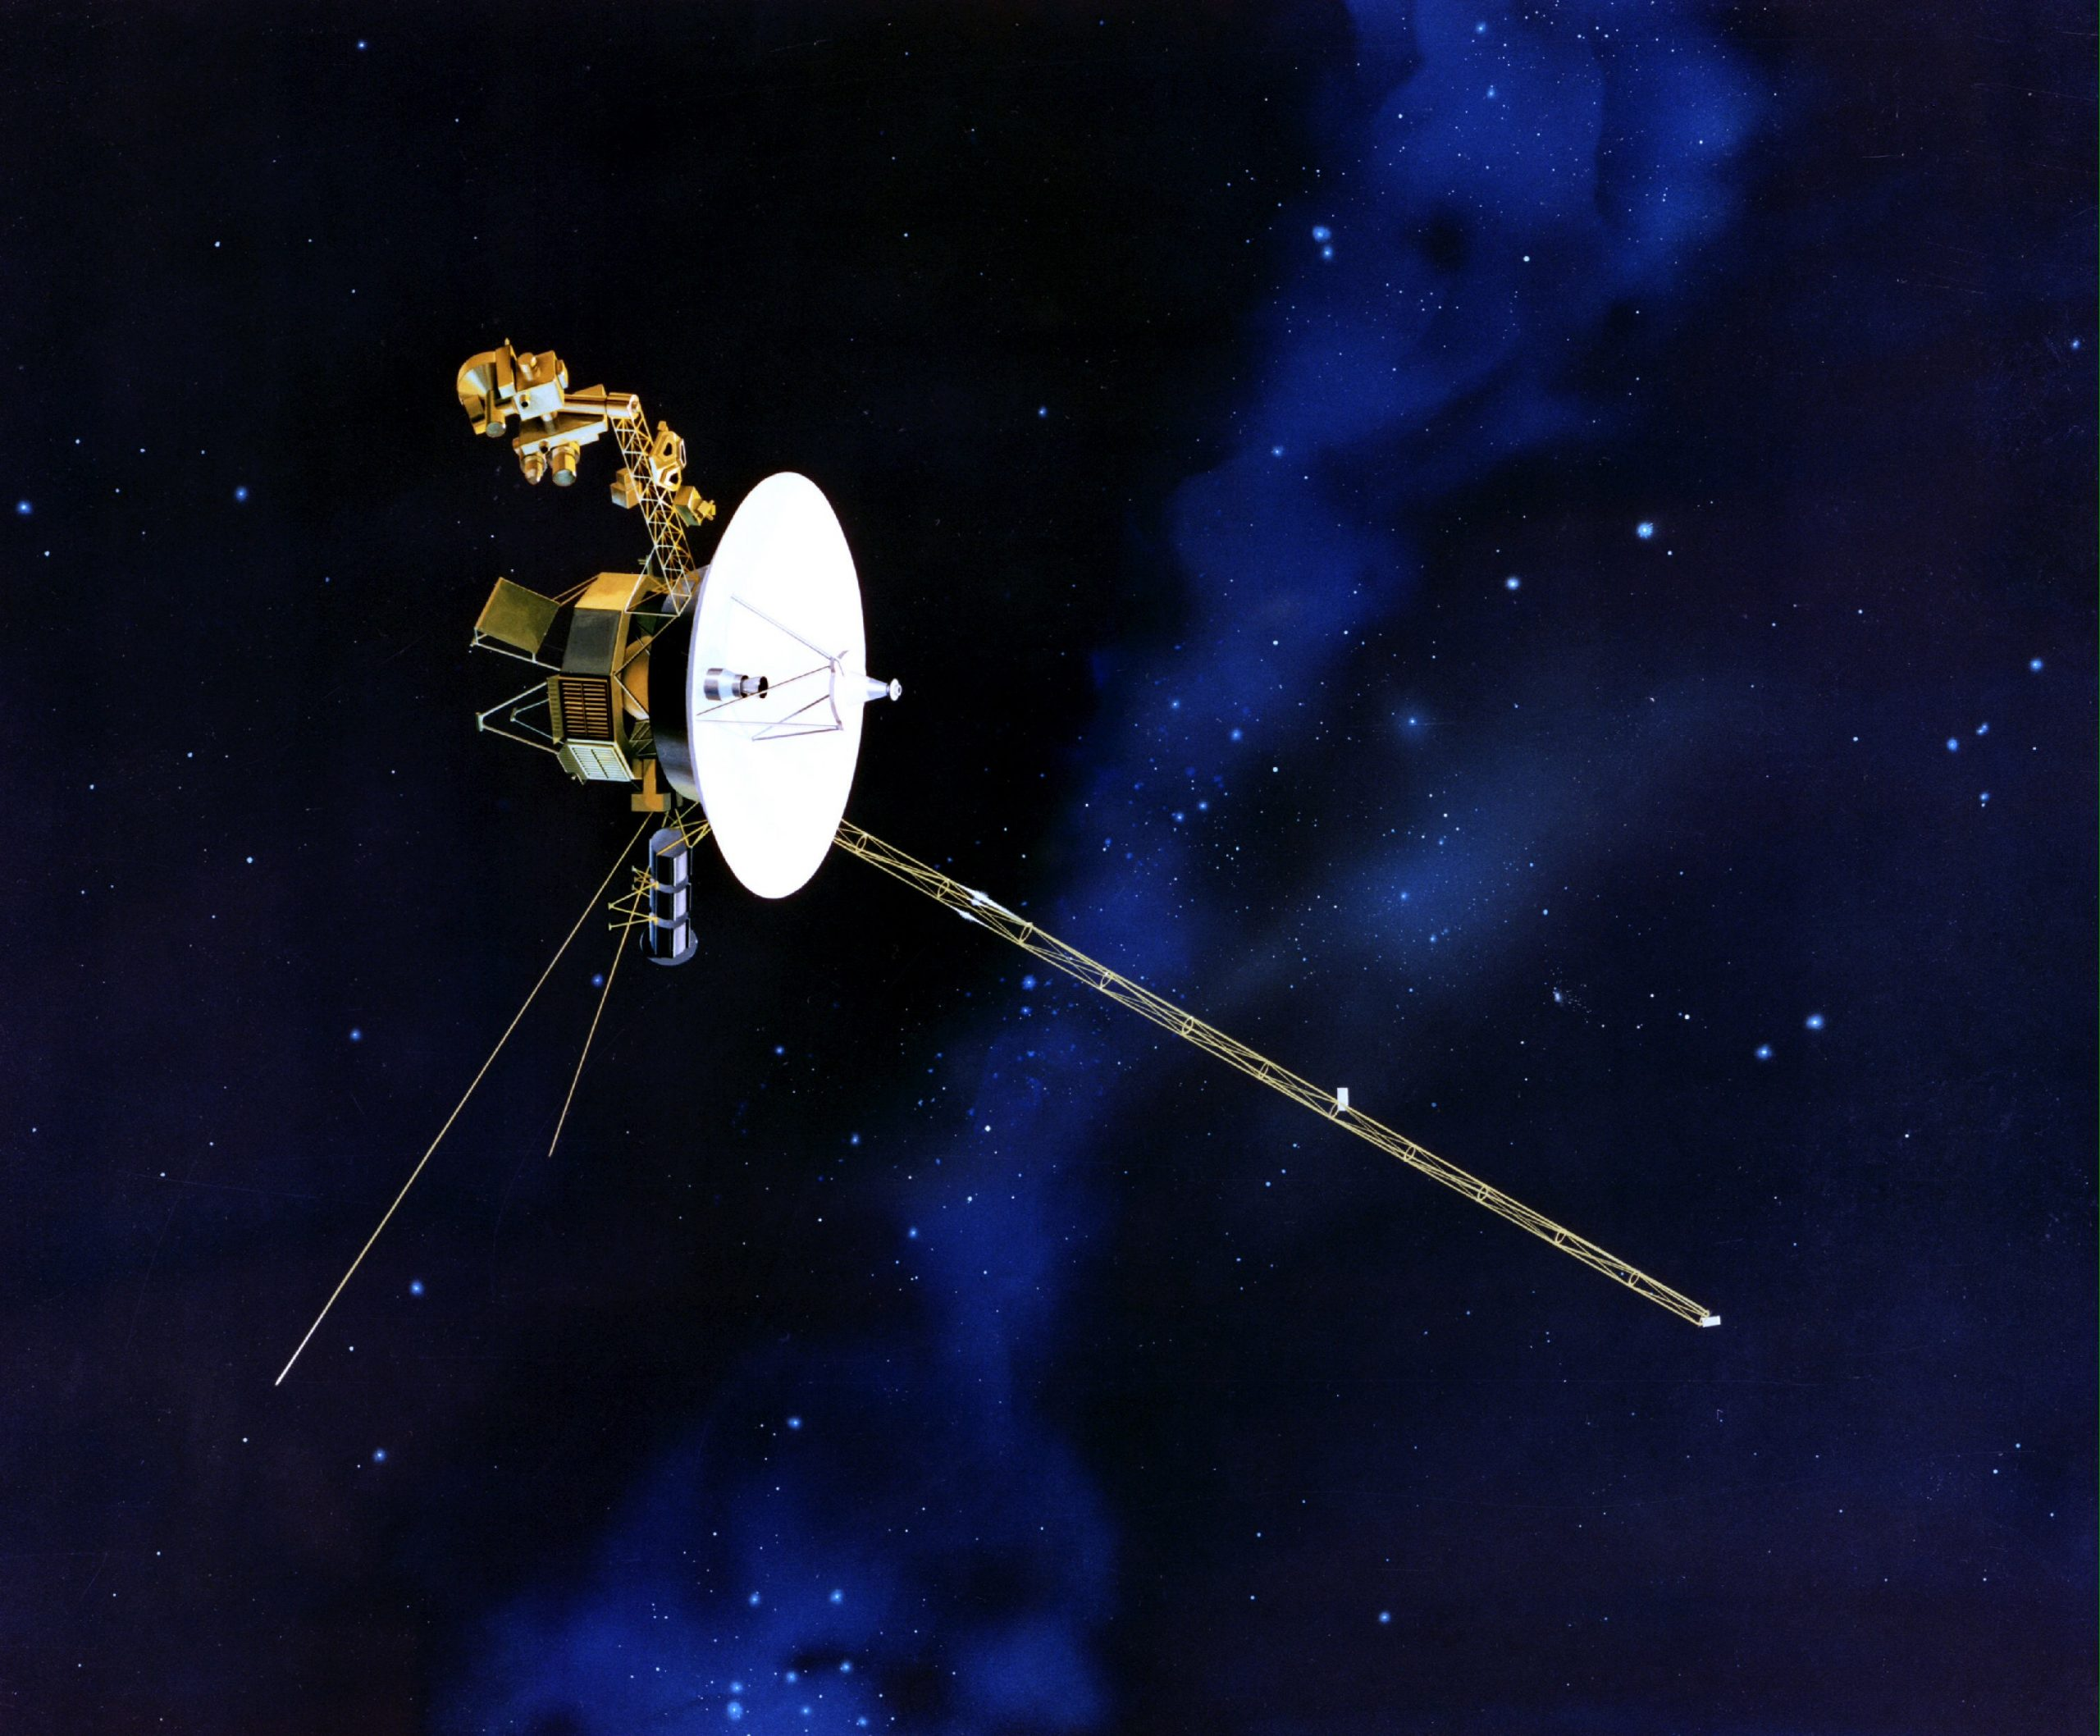 Voyager: Happy Birthday!